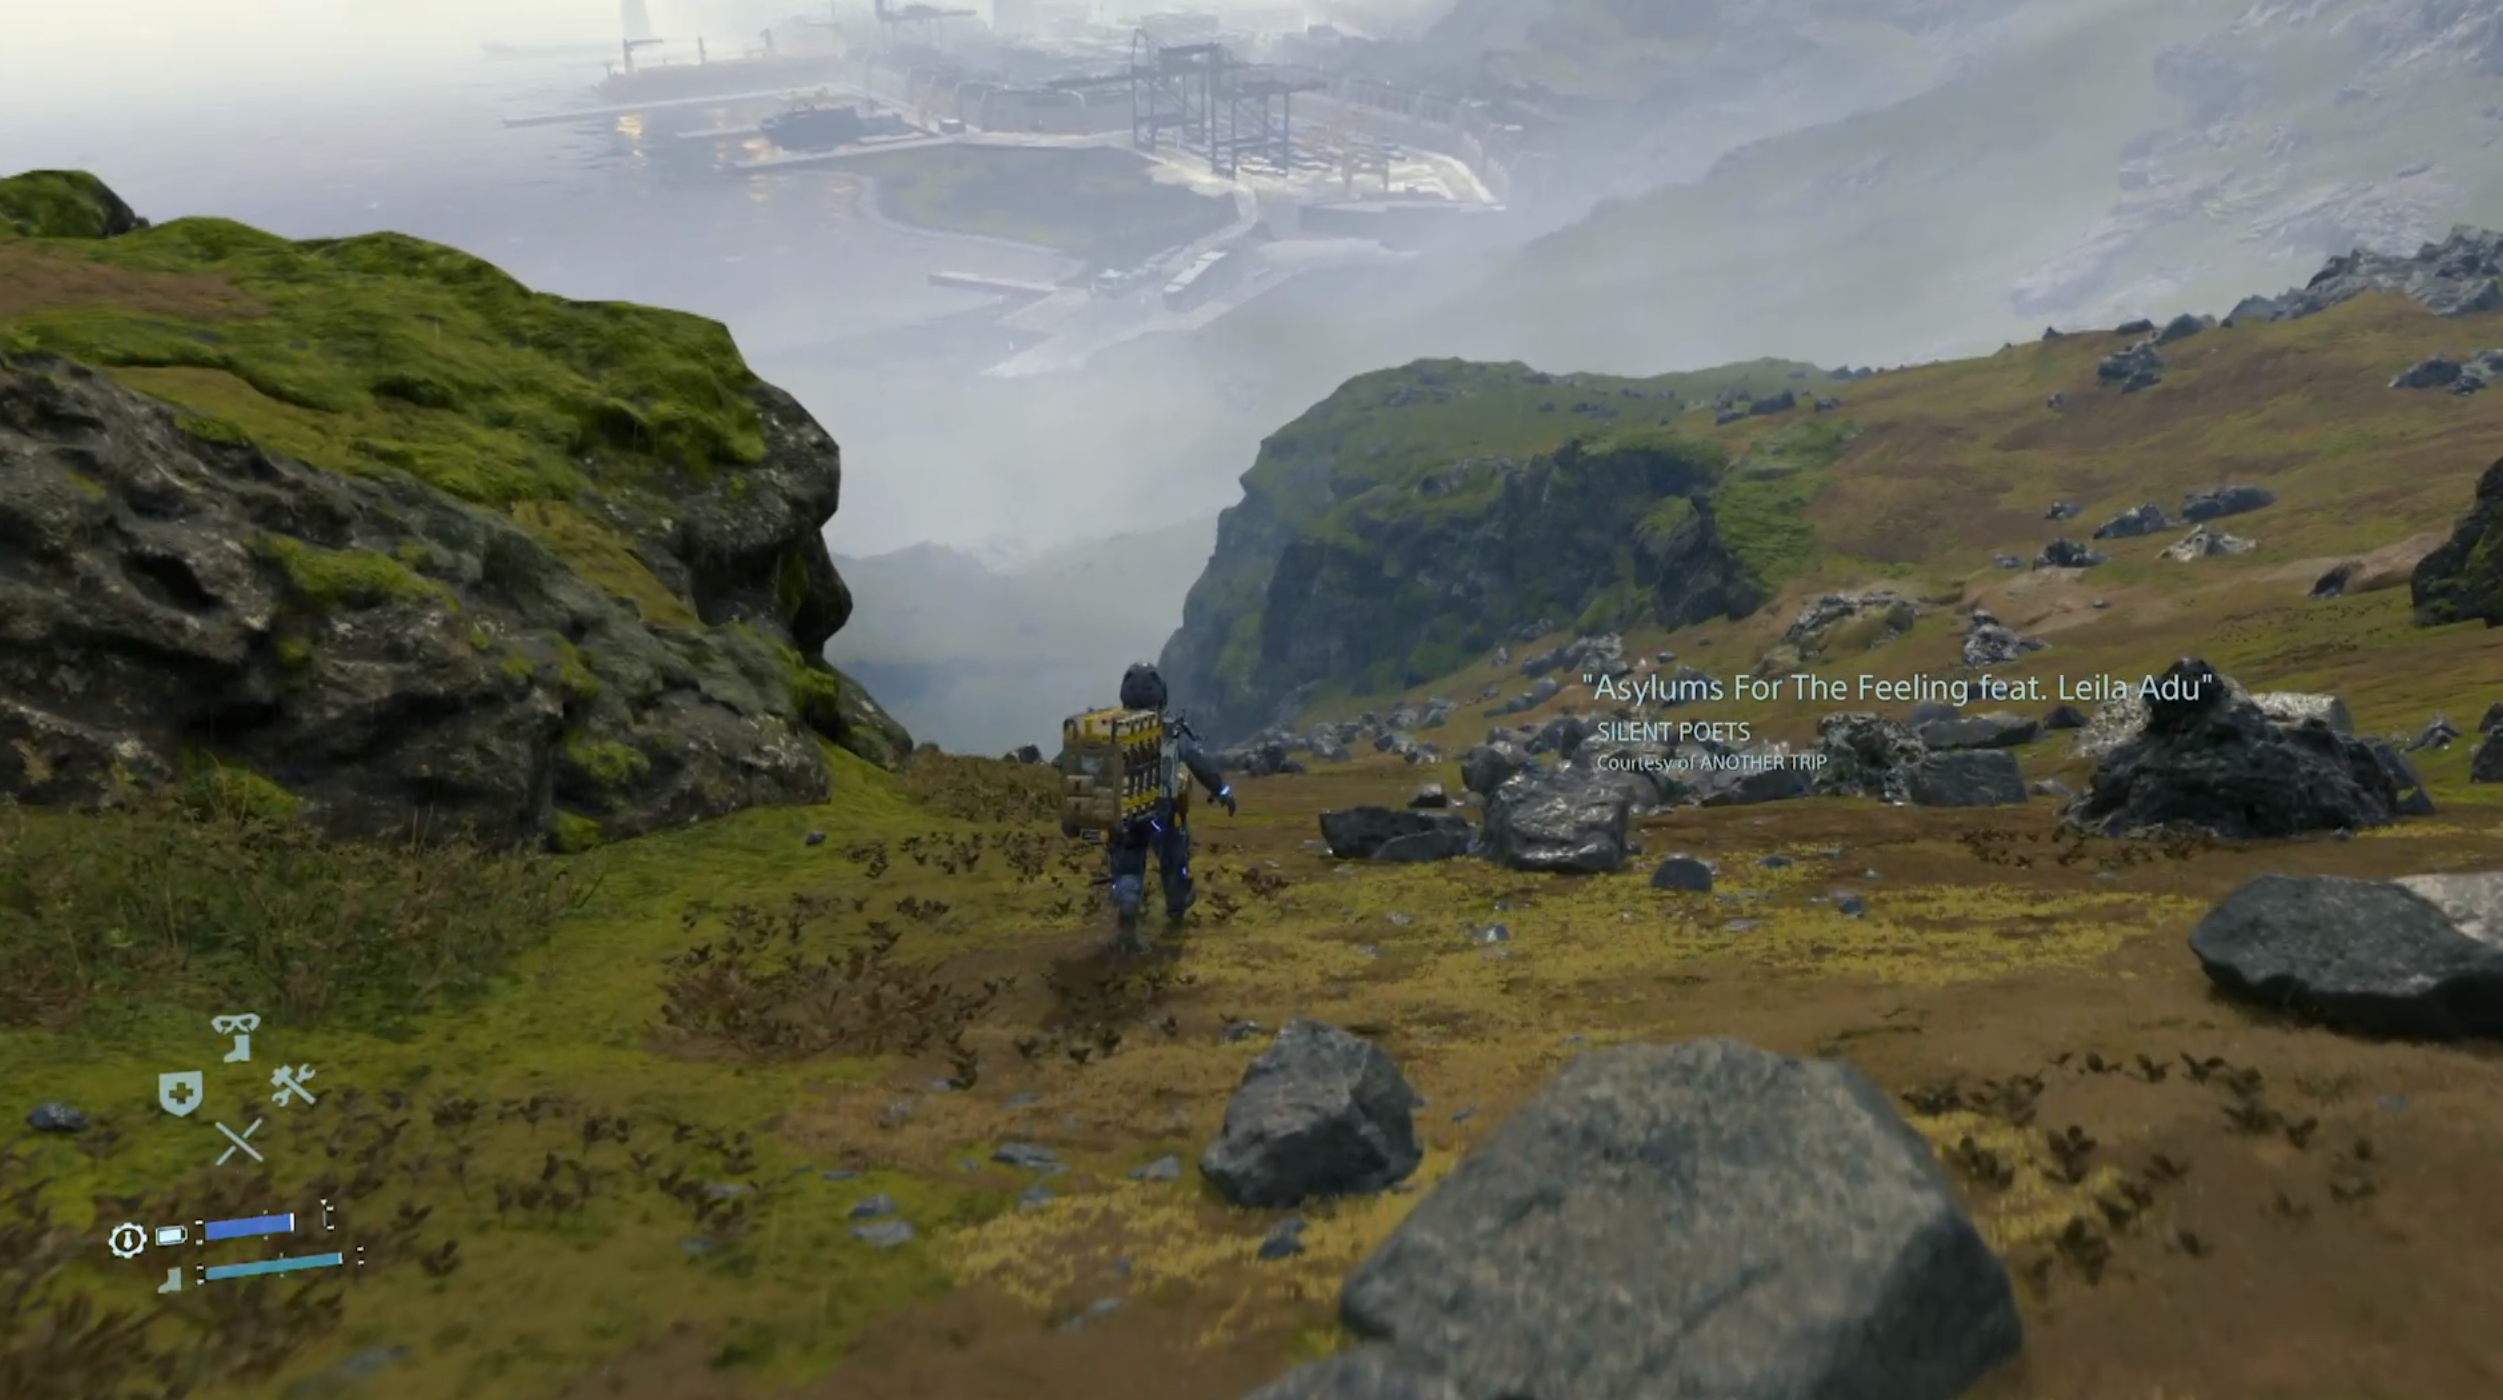 Death Stranding is a game about delivering items for Facebook 'likes' - how the Strand System works - VG247